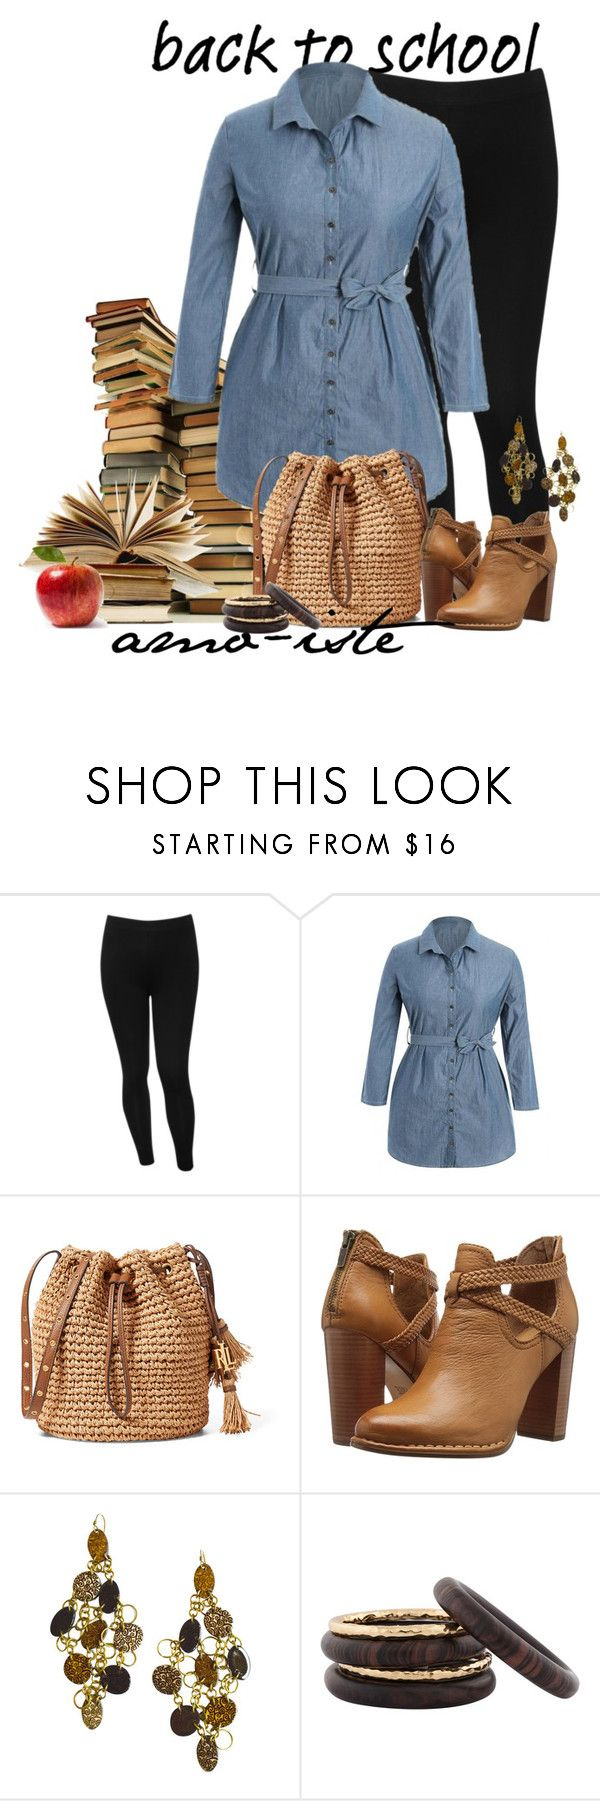 Back to School – Plus Size